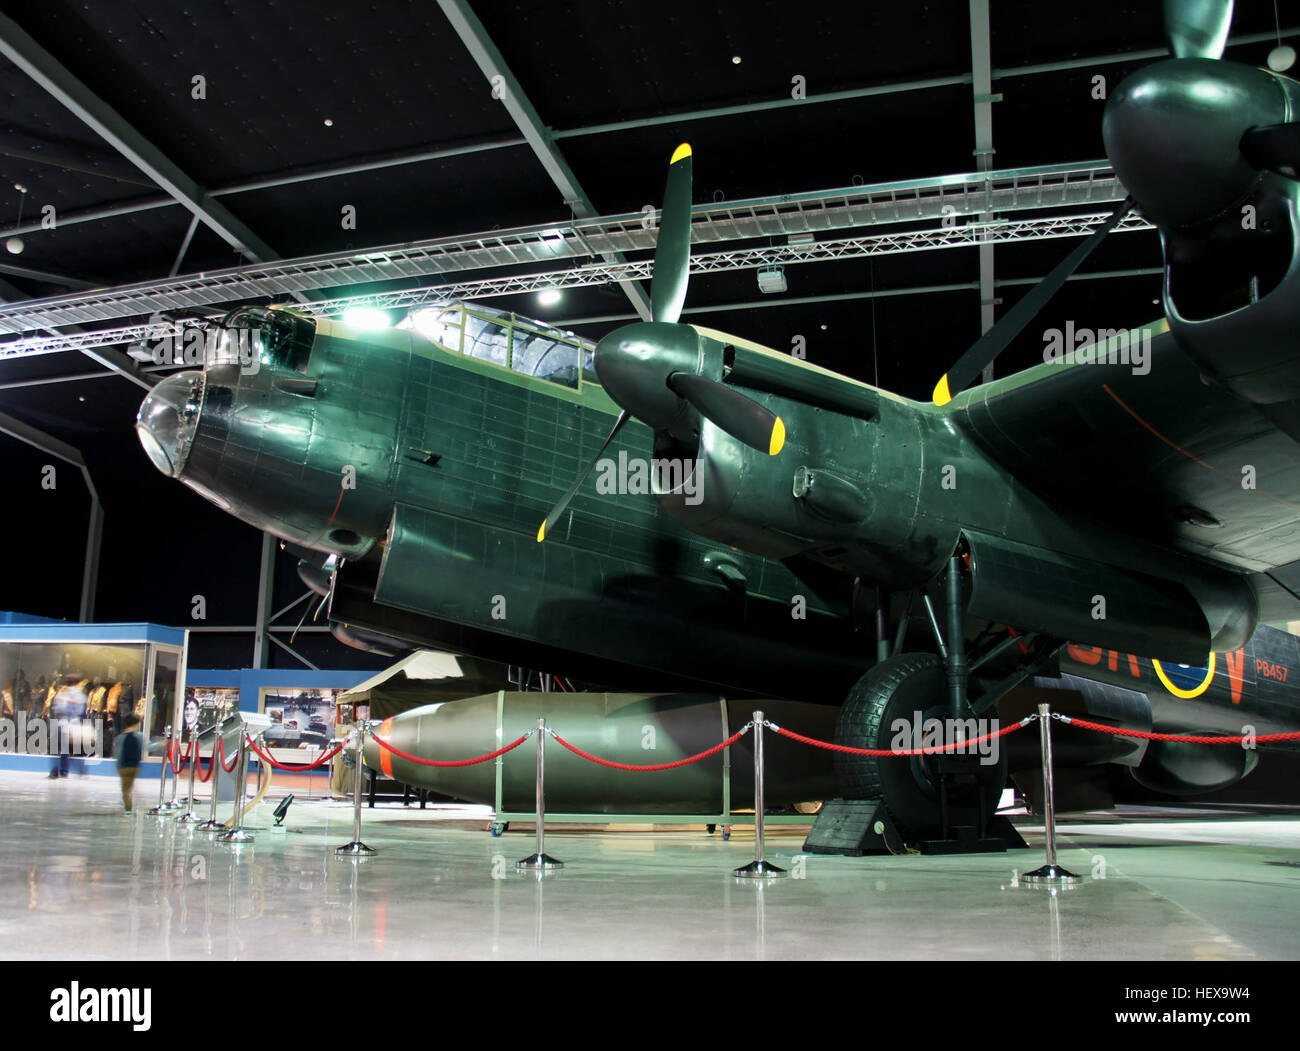 The Lancasters took part in many raids on Germany in World War Two. They were also used in specific raids such as Stock Photo